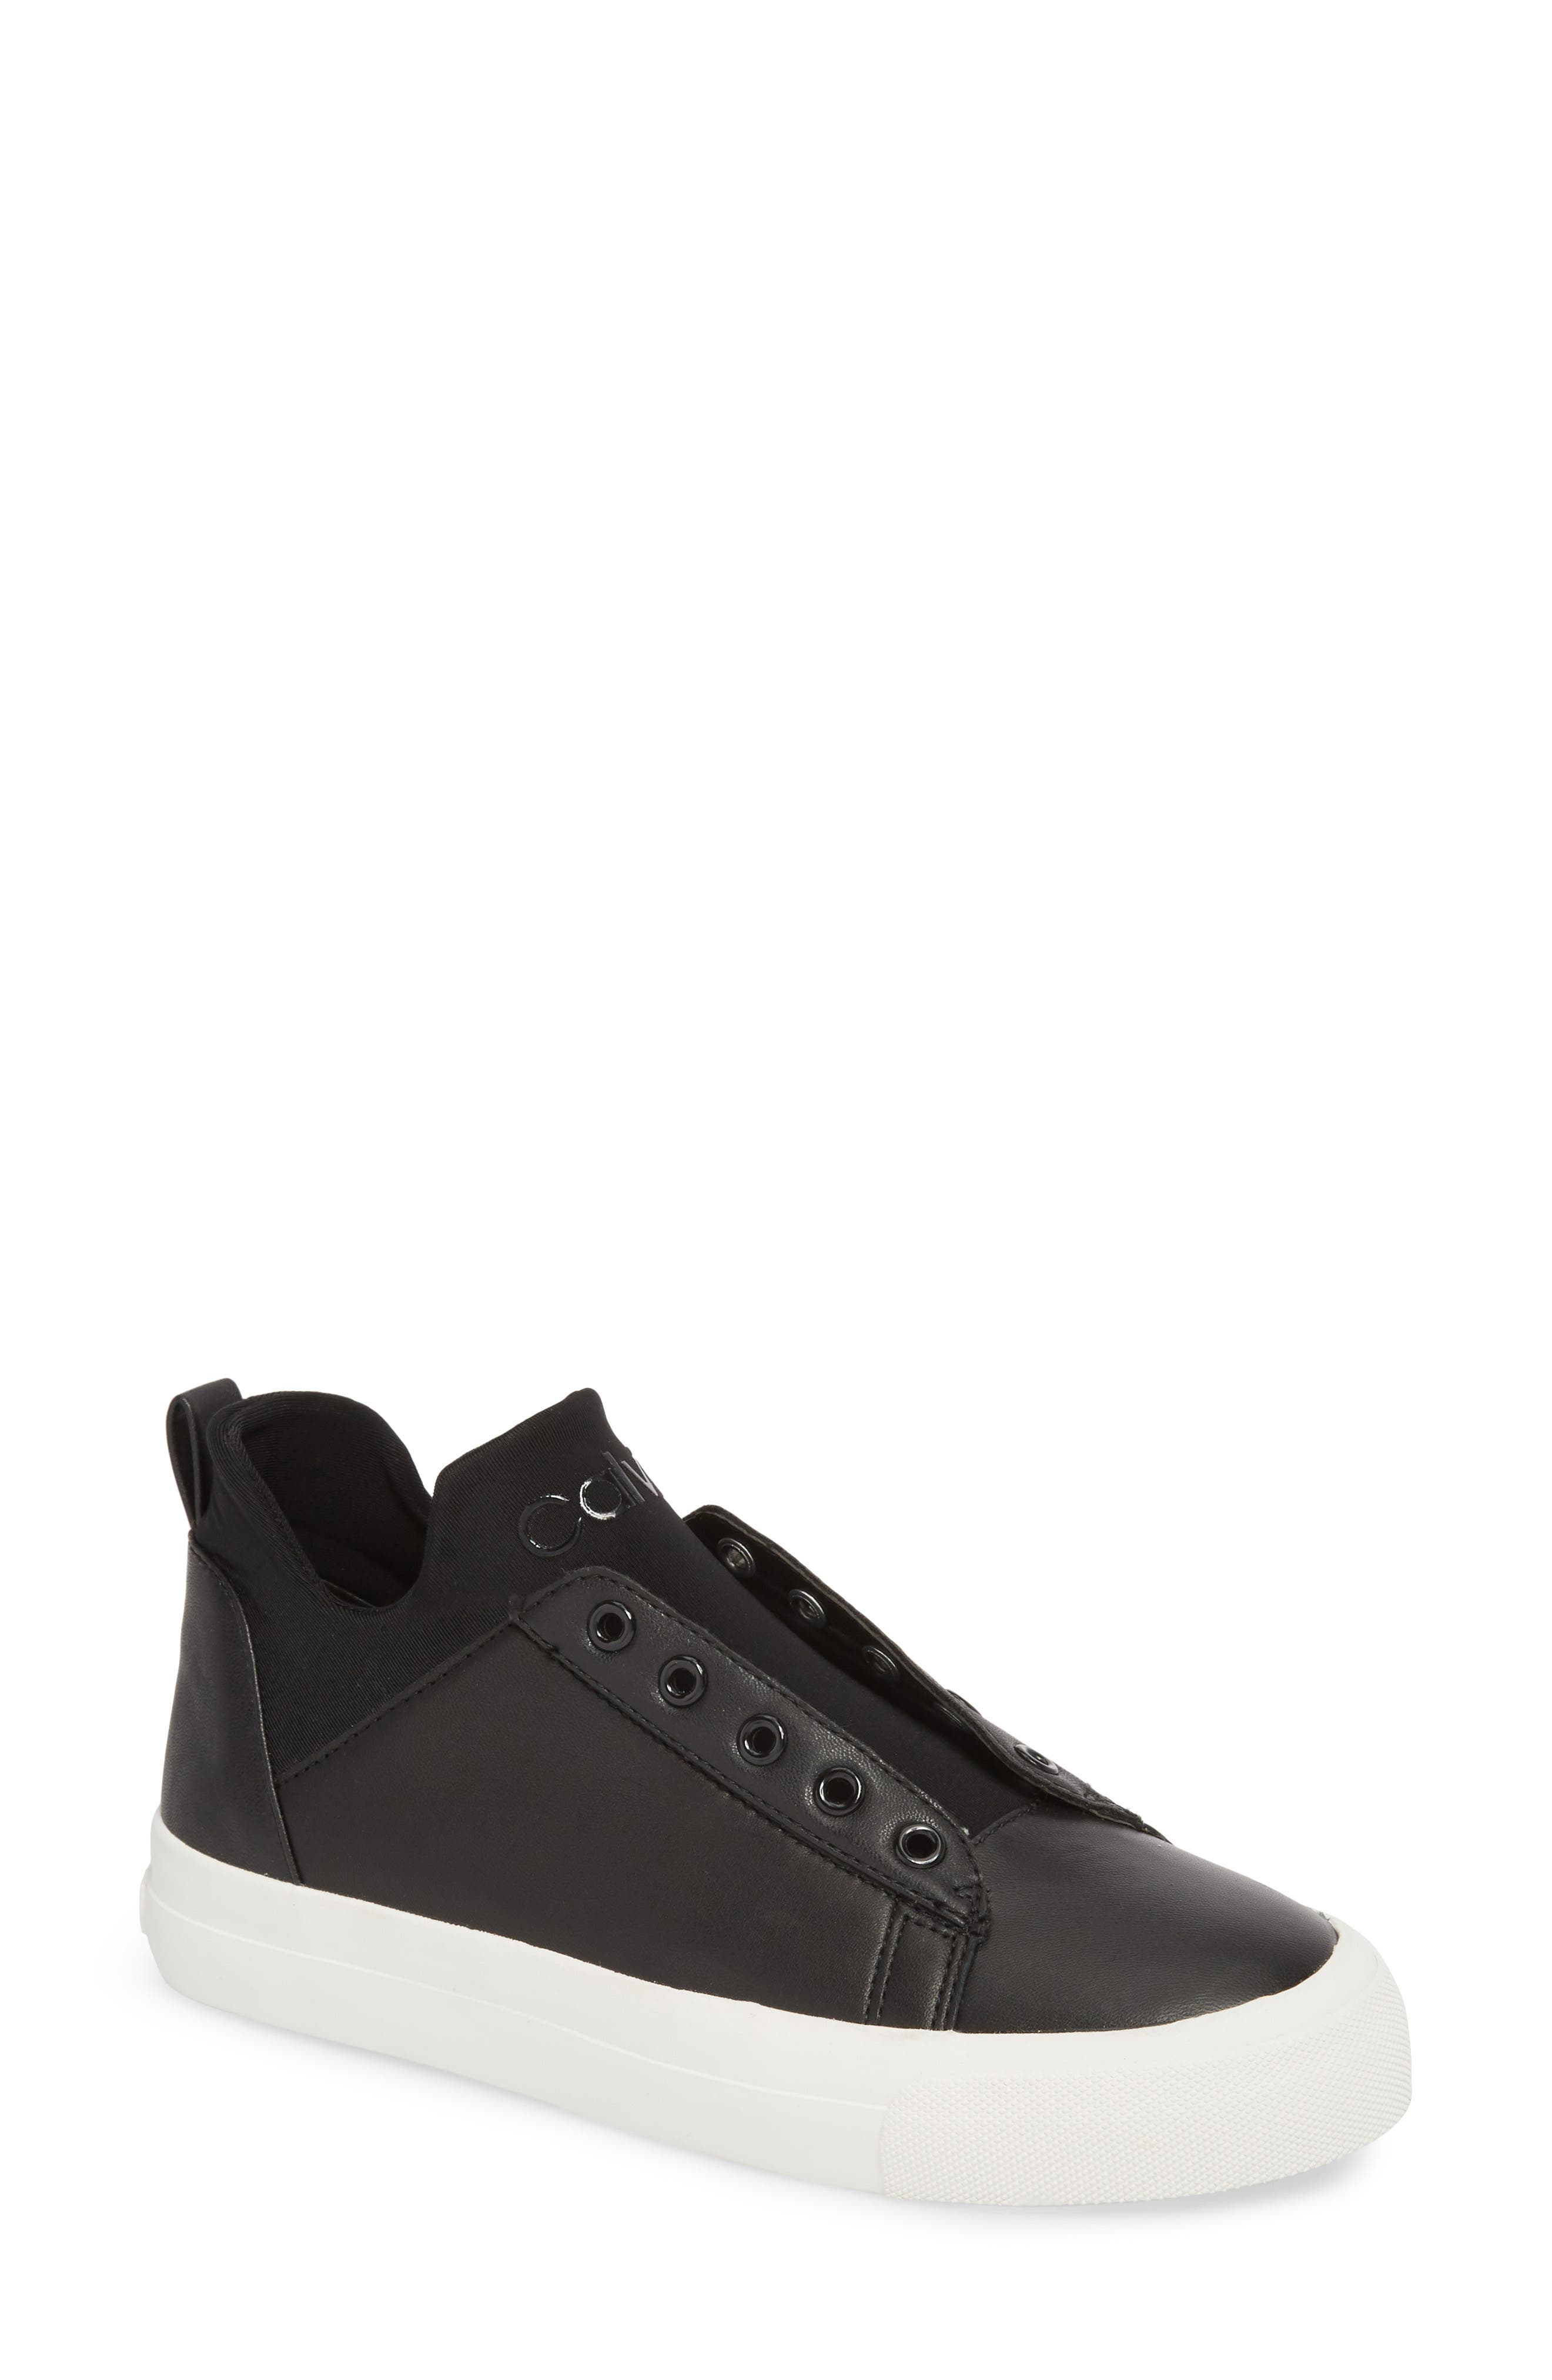 Valorie Mid Top Sneaker,                             Main thumbnail 1, color,                             Black Leather